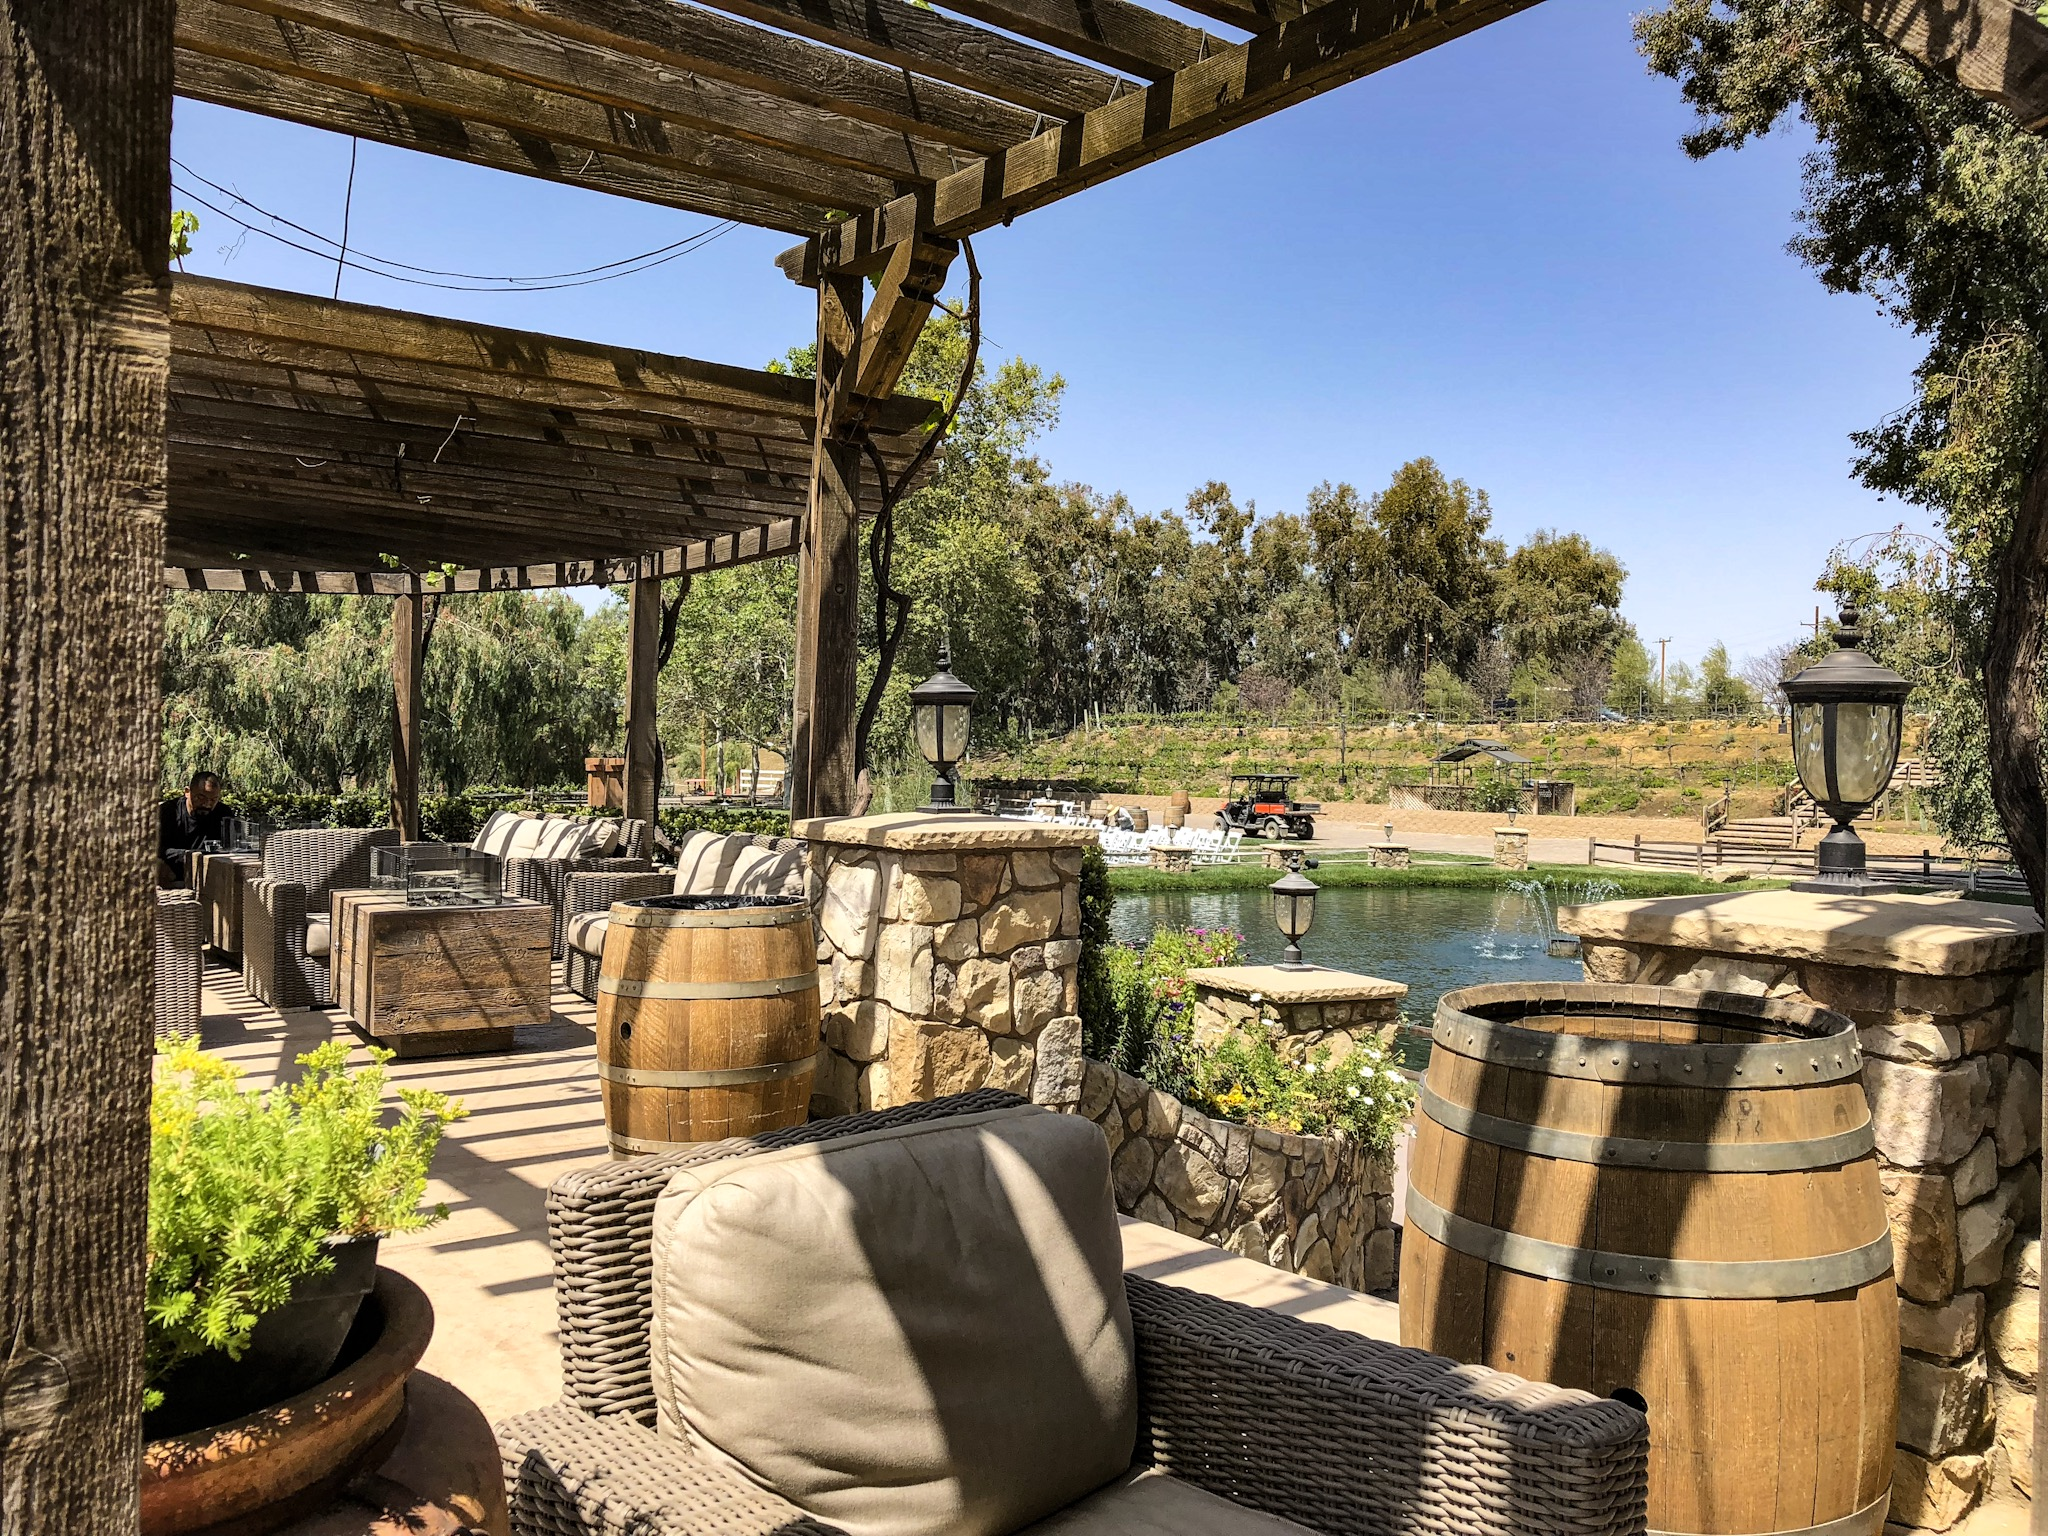 San Diego Staycation - Temecula Getaway - Vitagliano Winery